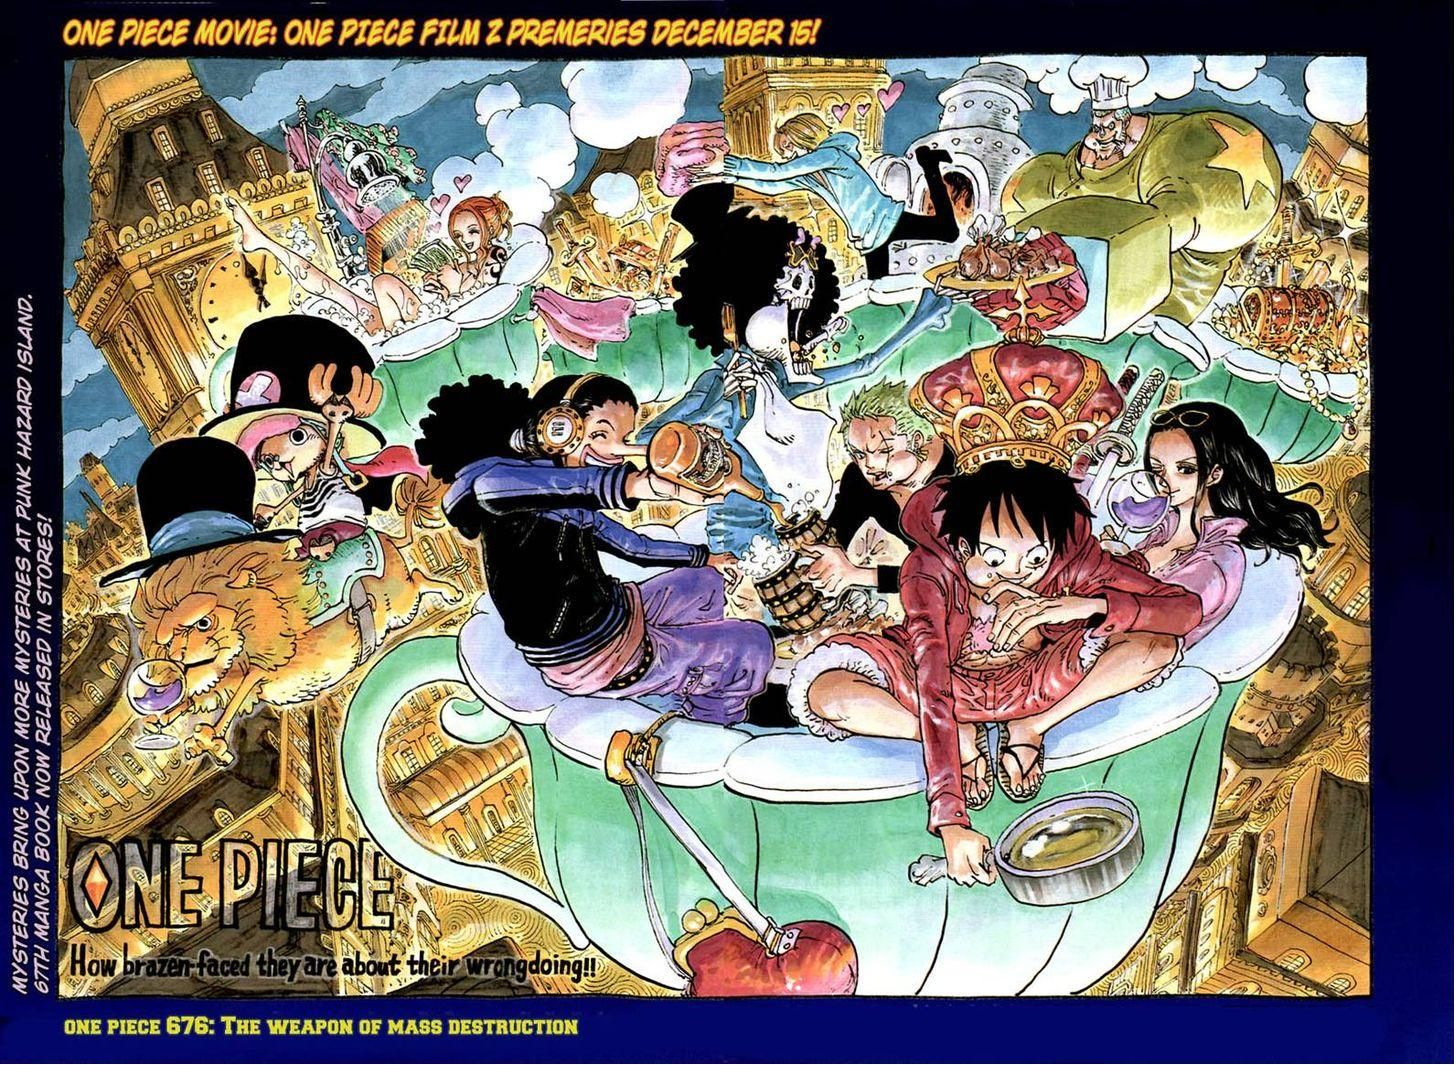 one piece 676 page 2 ワンピース 扉絵 ワンピース ネタバレ onepiece イラスト